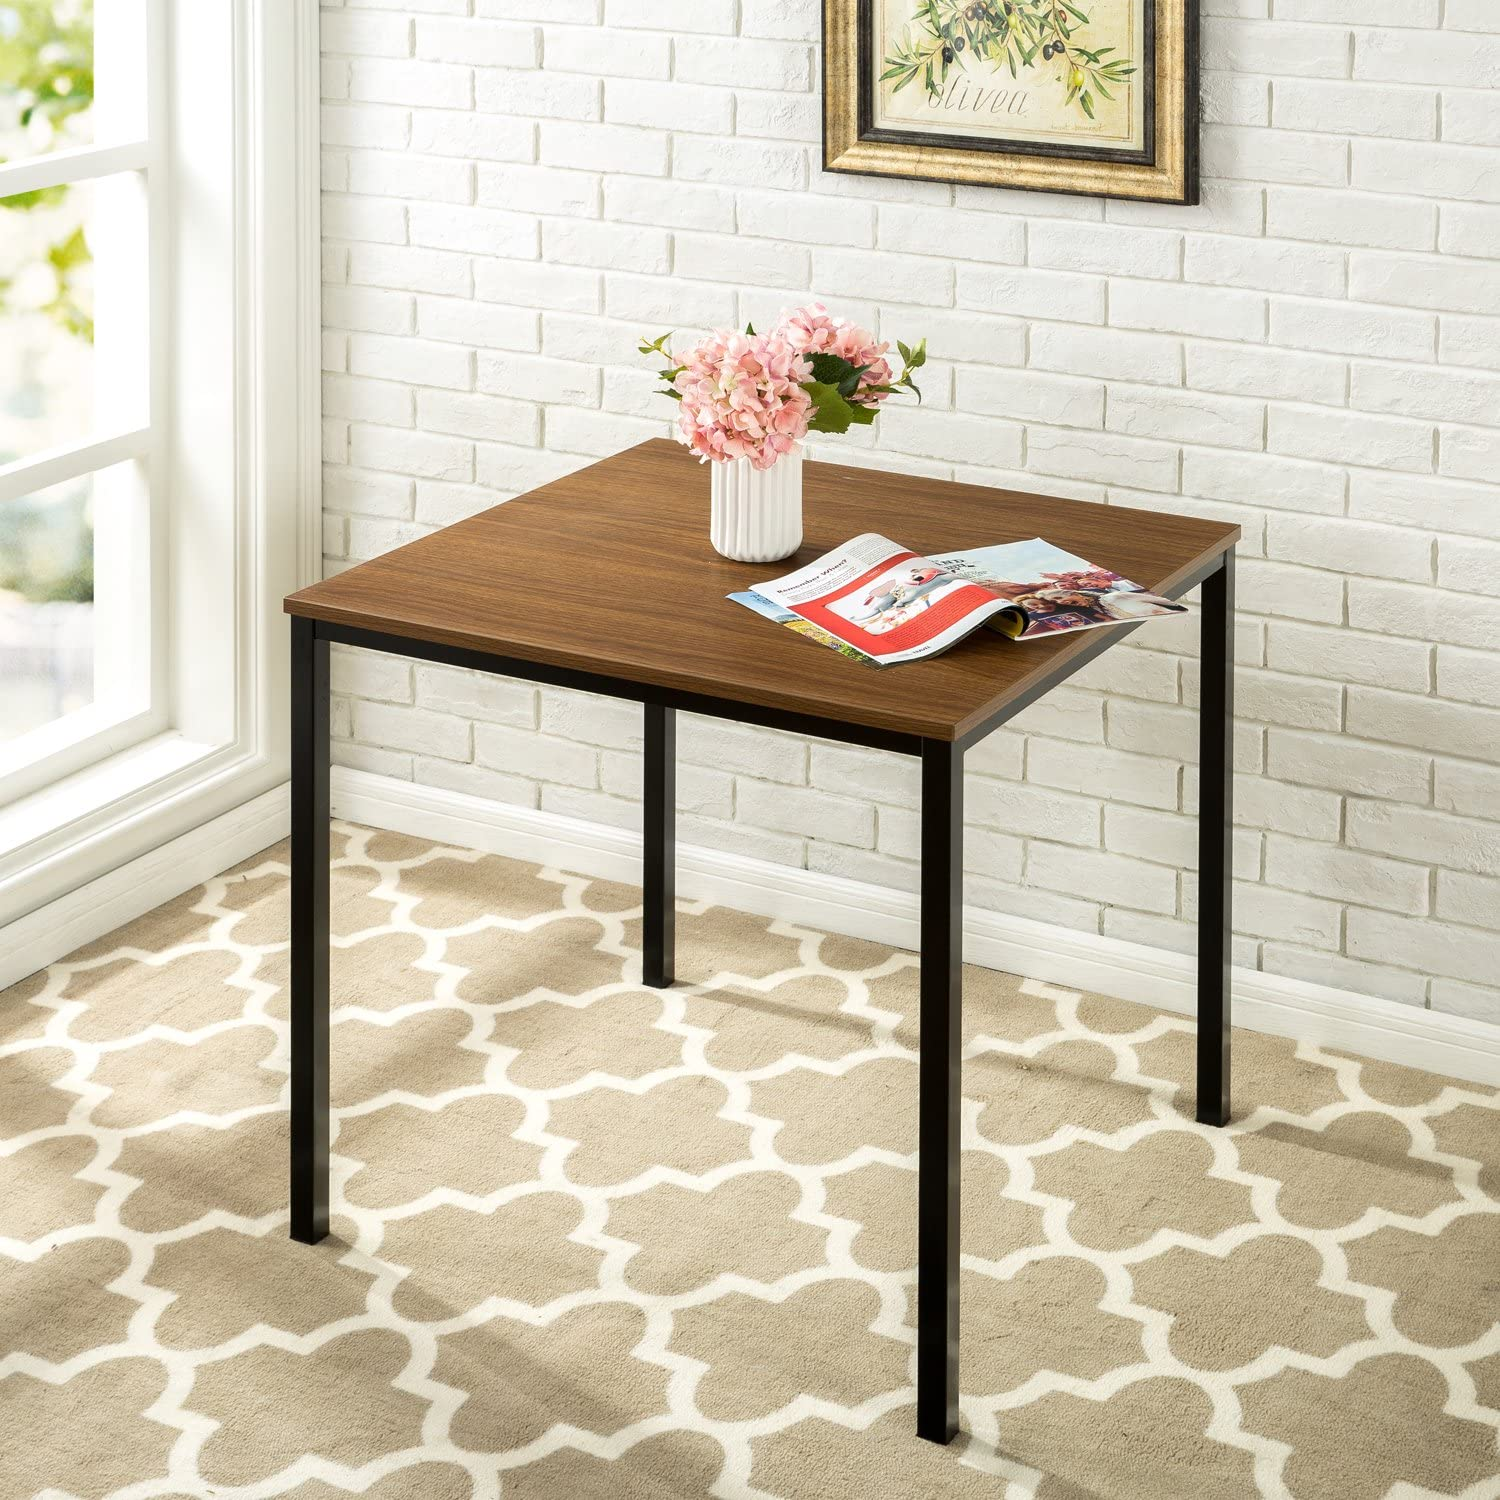 Zinus Conference Room Table Brown